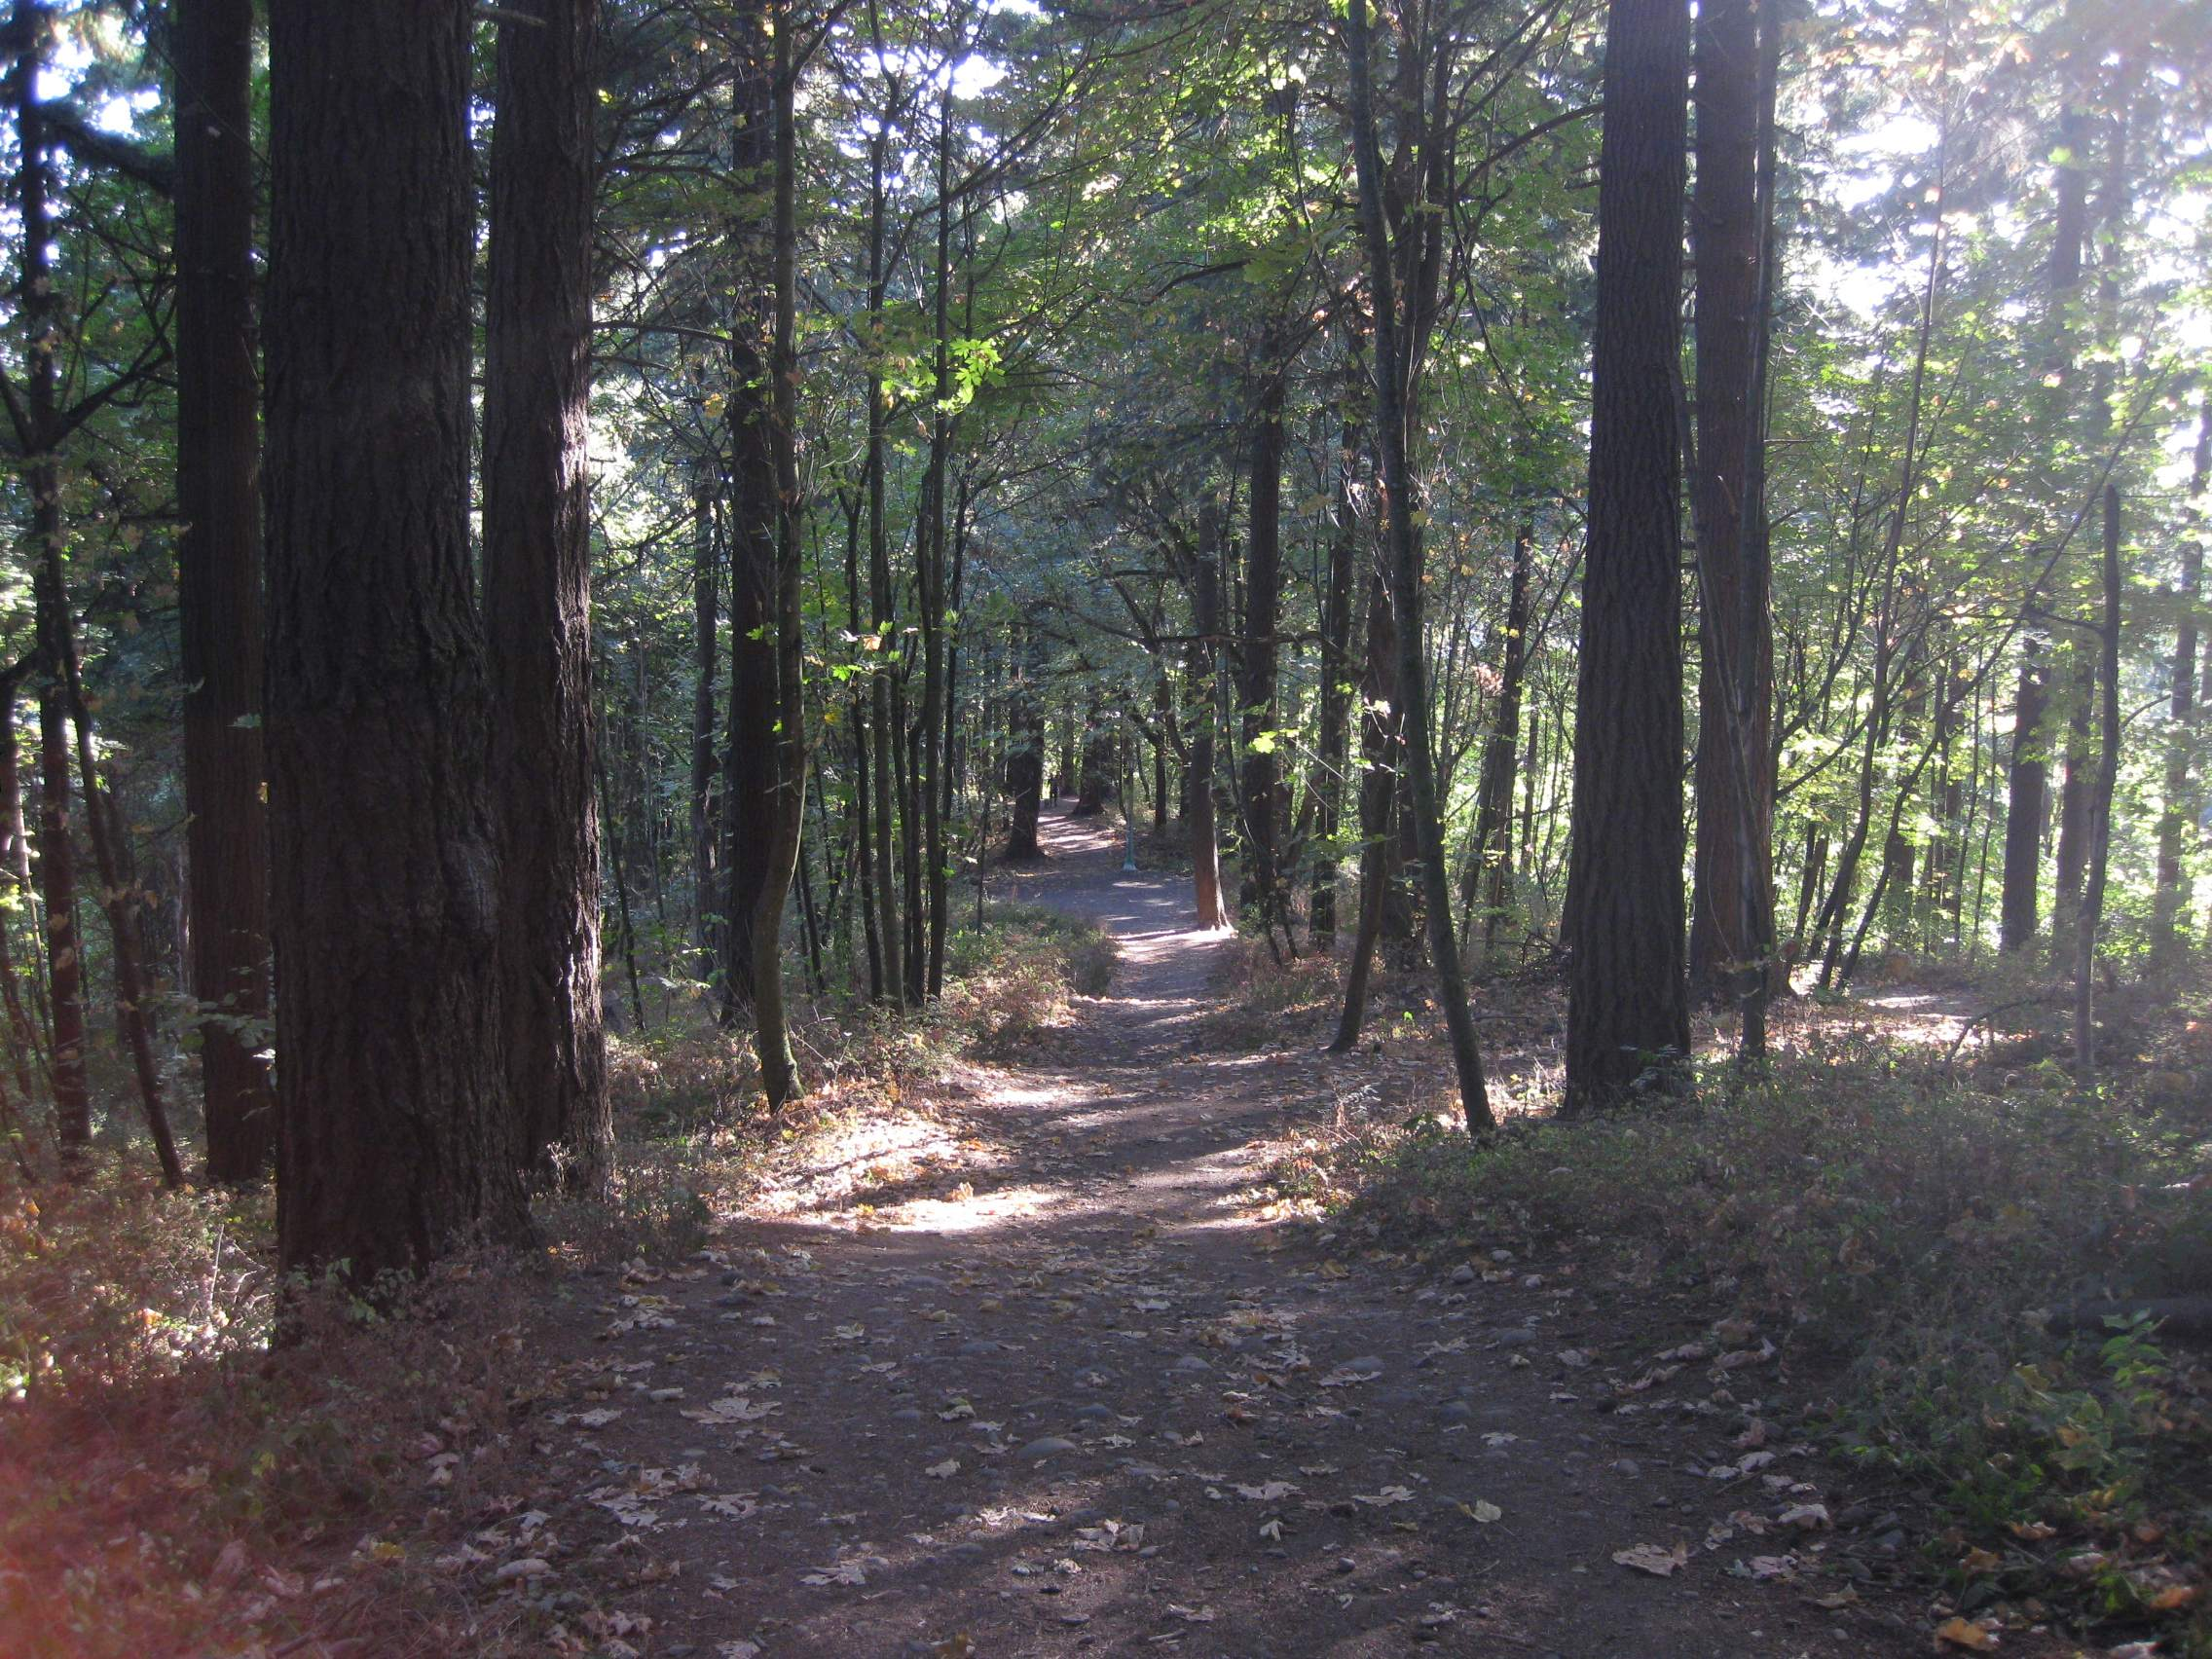 One of several paths through the woods.